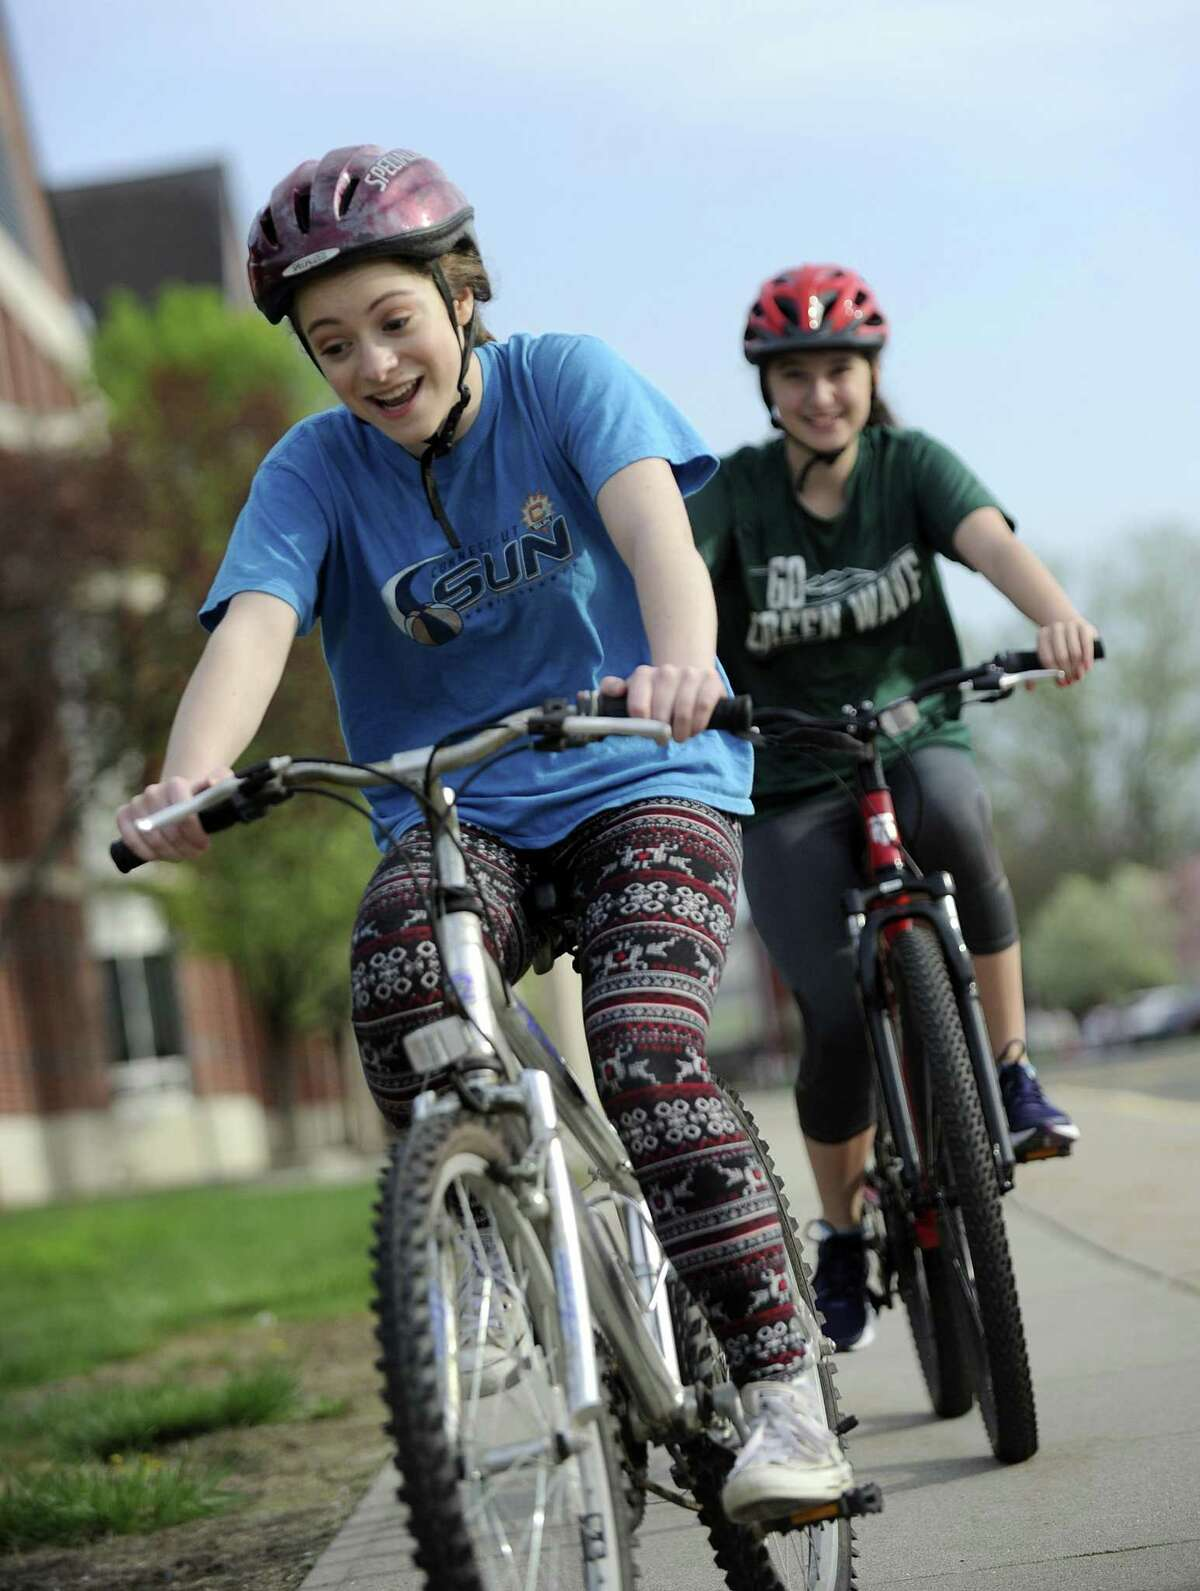 McKenna Riedl, 14, left, and Lilian Vito, 15, ride bicycles around New Milford High School Monday morning. The school started a new bike safety initiative where students learn these skills in gym class.